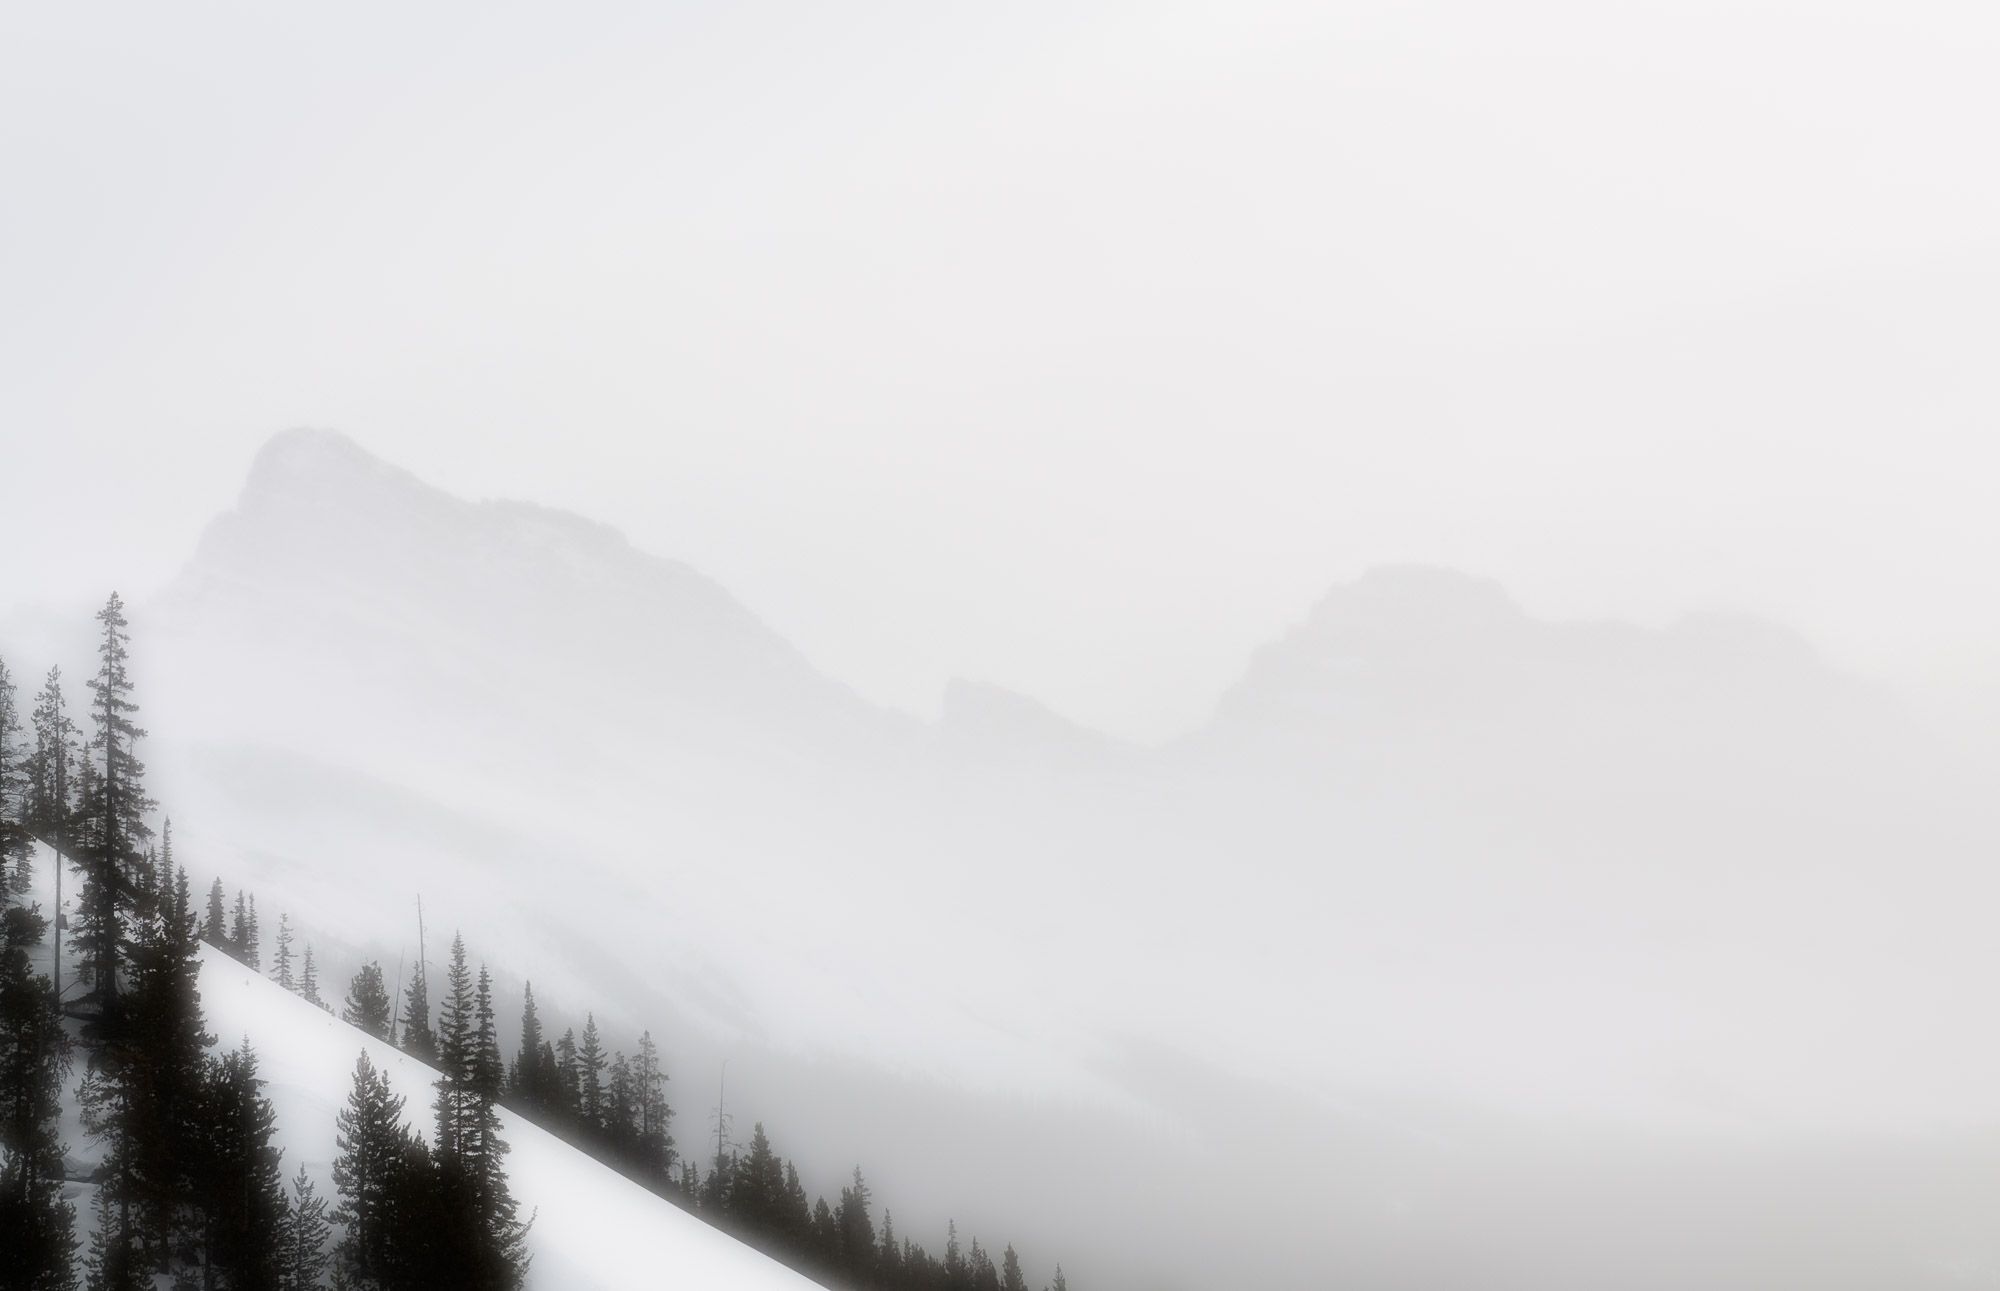 Rocky Mountain vista in snowstorm - Banff National Park, Canada